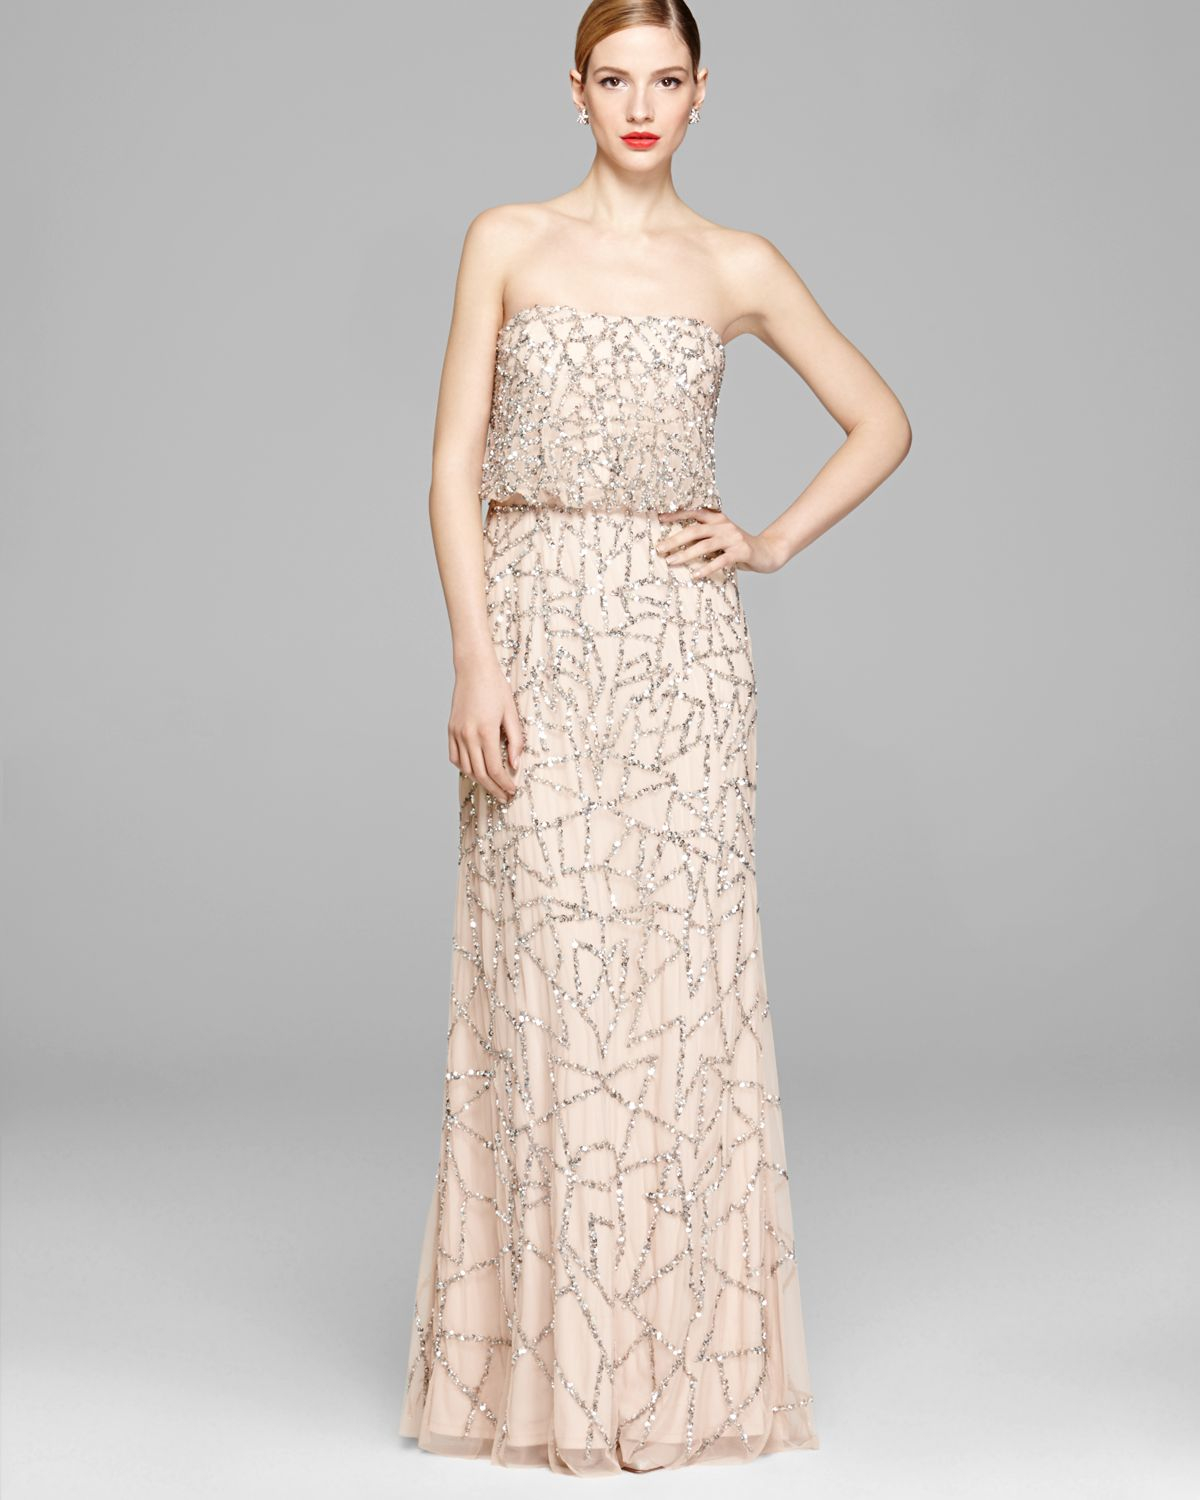 Lyst - Adrianna Papell Strapless Blouson Gown in Pink